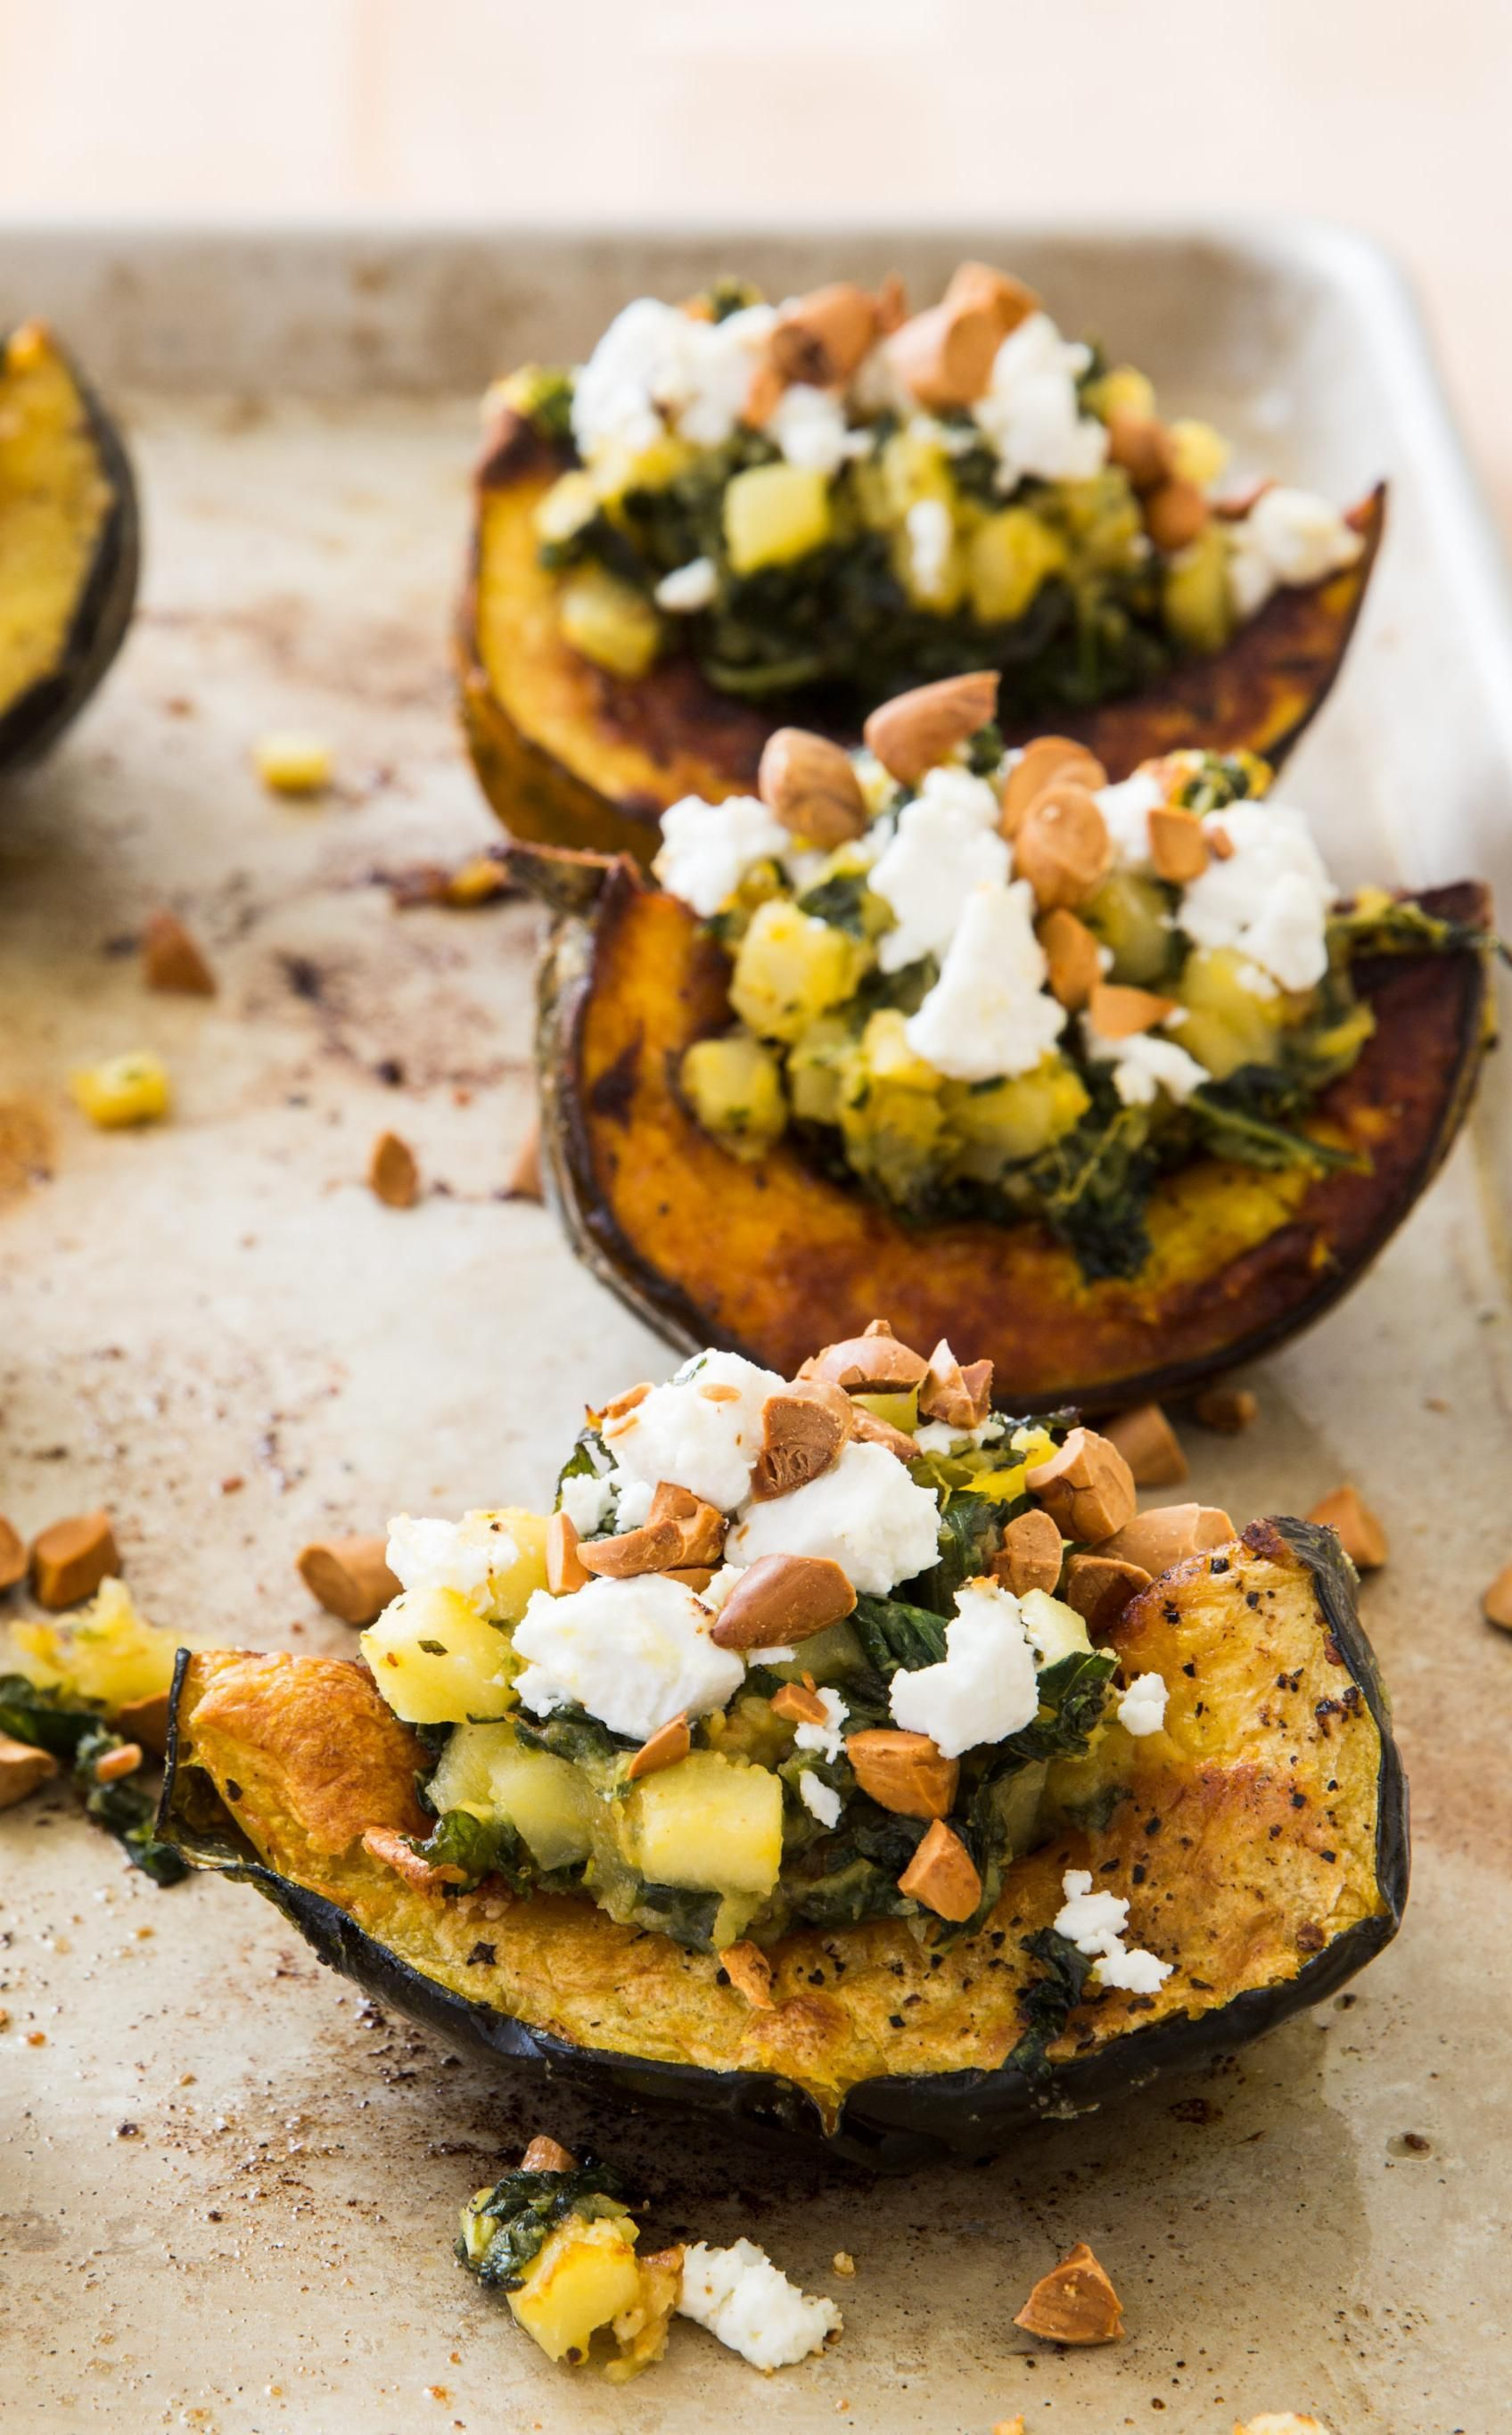 Stuffed Acorn Squash With Pear And Hazelnut Our Goal Was To Dress